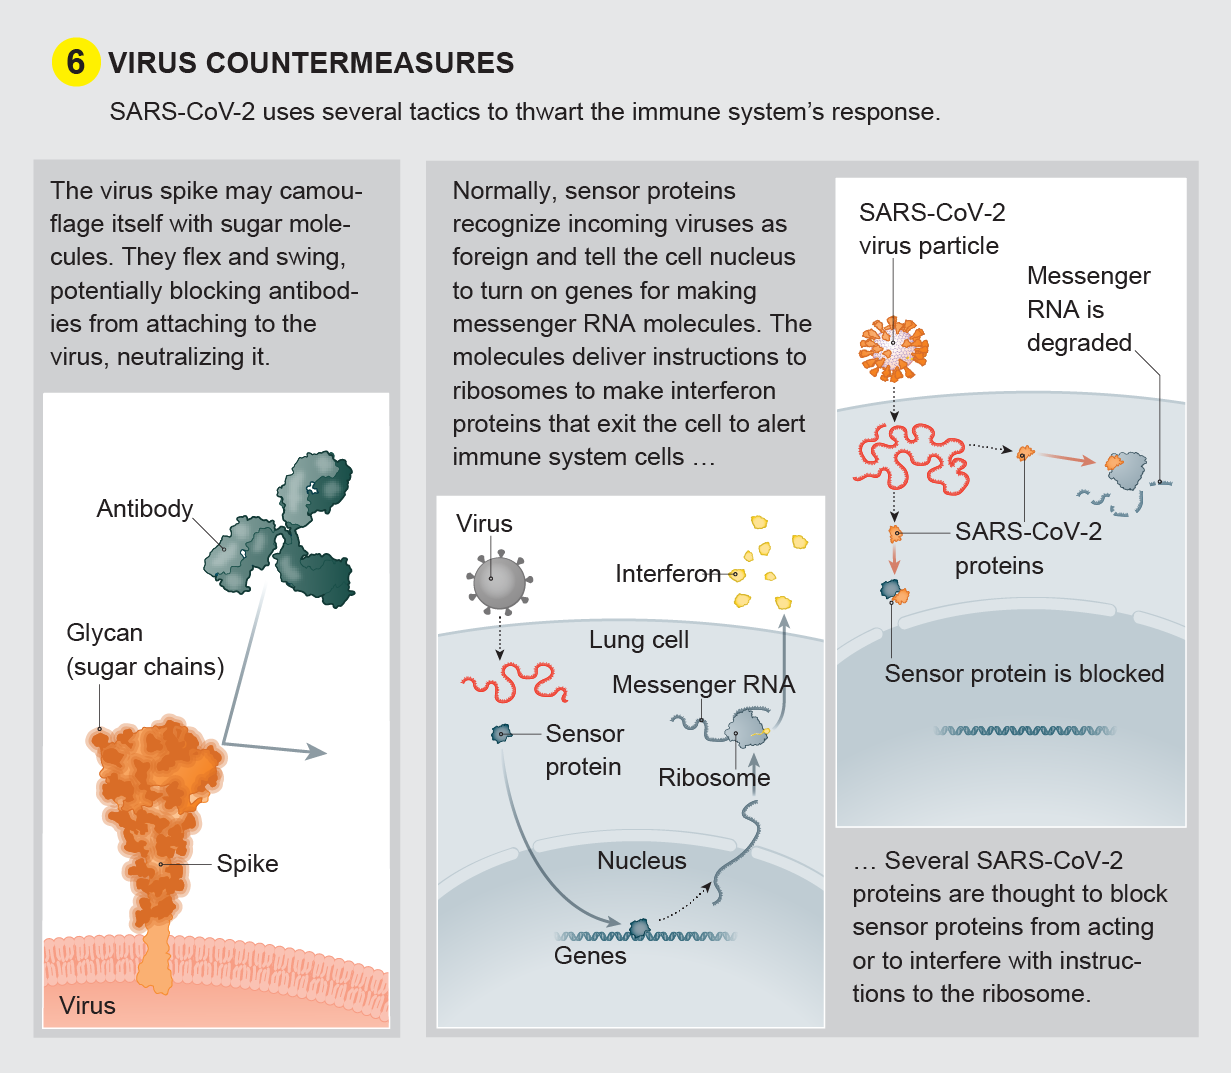 Virus countermeasures